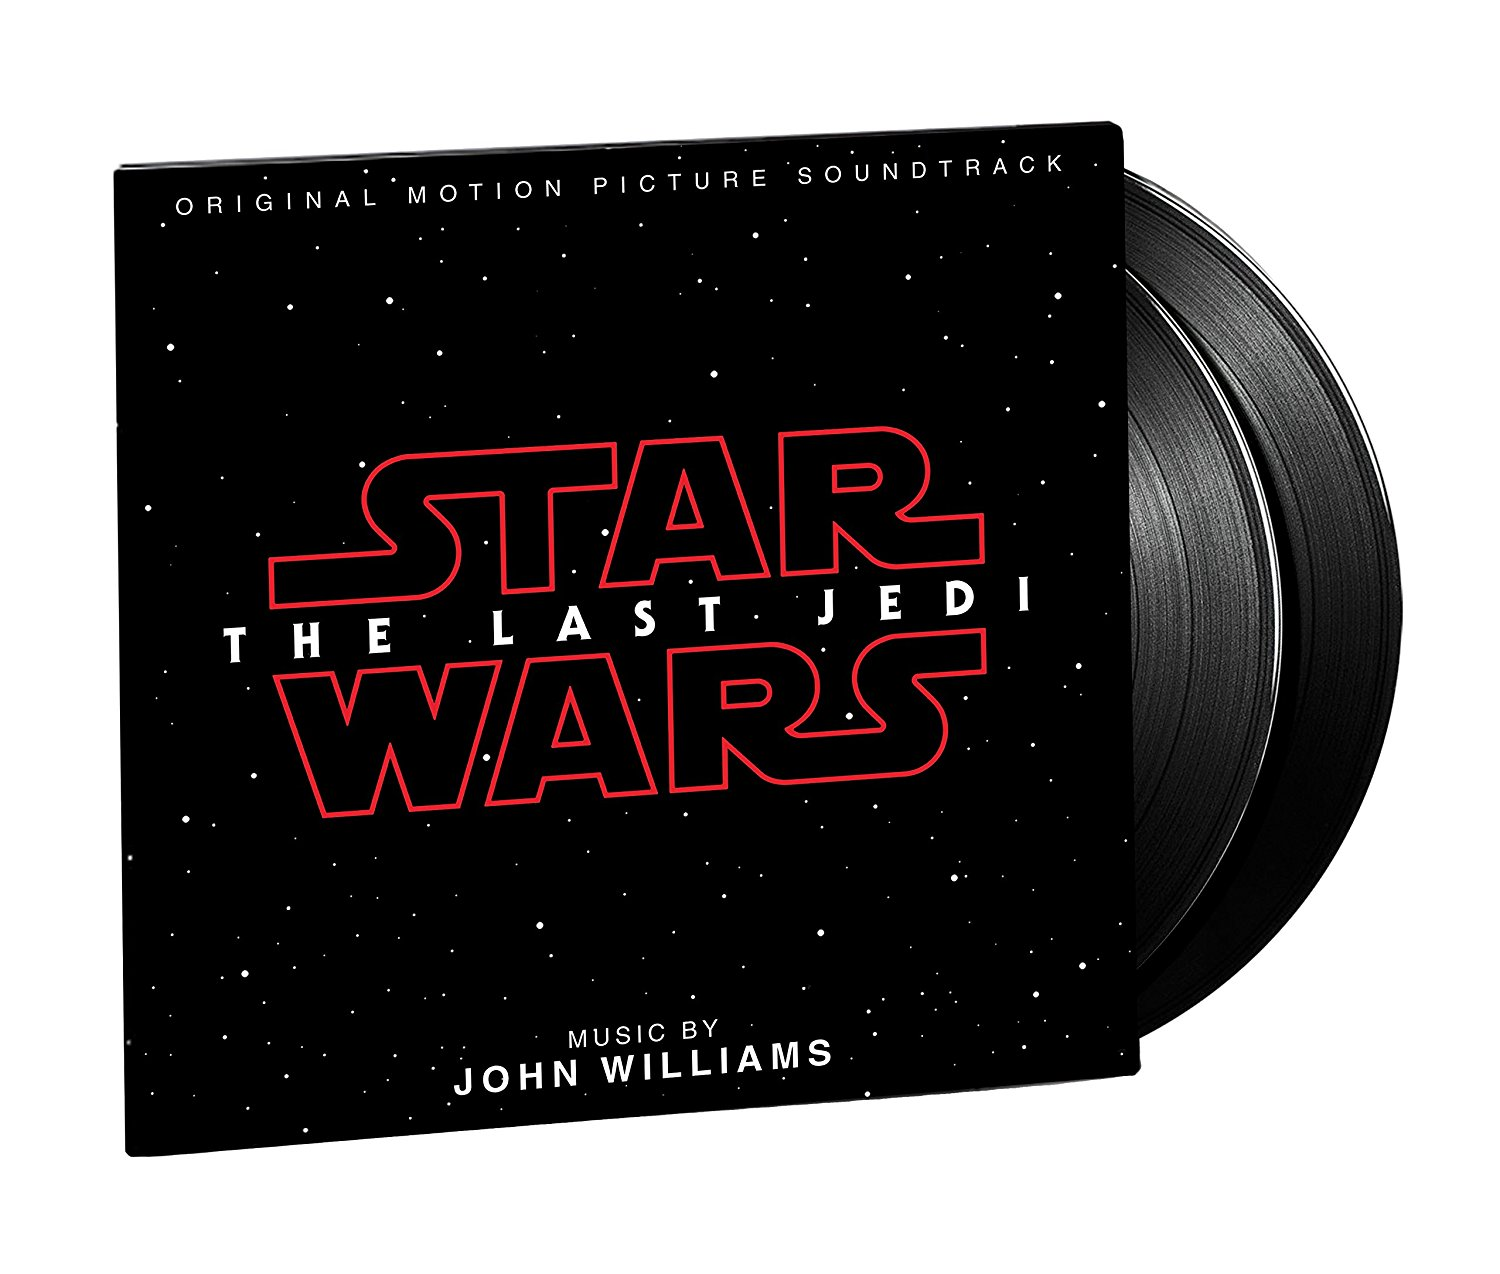 John Williams. Star Wars: The Last Jedi (Original Motion Picture Soundtrack) (2 LP) платье oodji ultra sport цвет темно синий бежевый 14001071 10 46148 7933s размер l 48 170